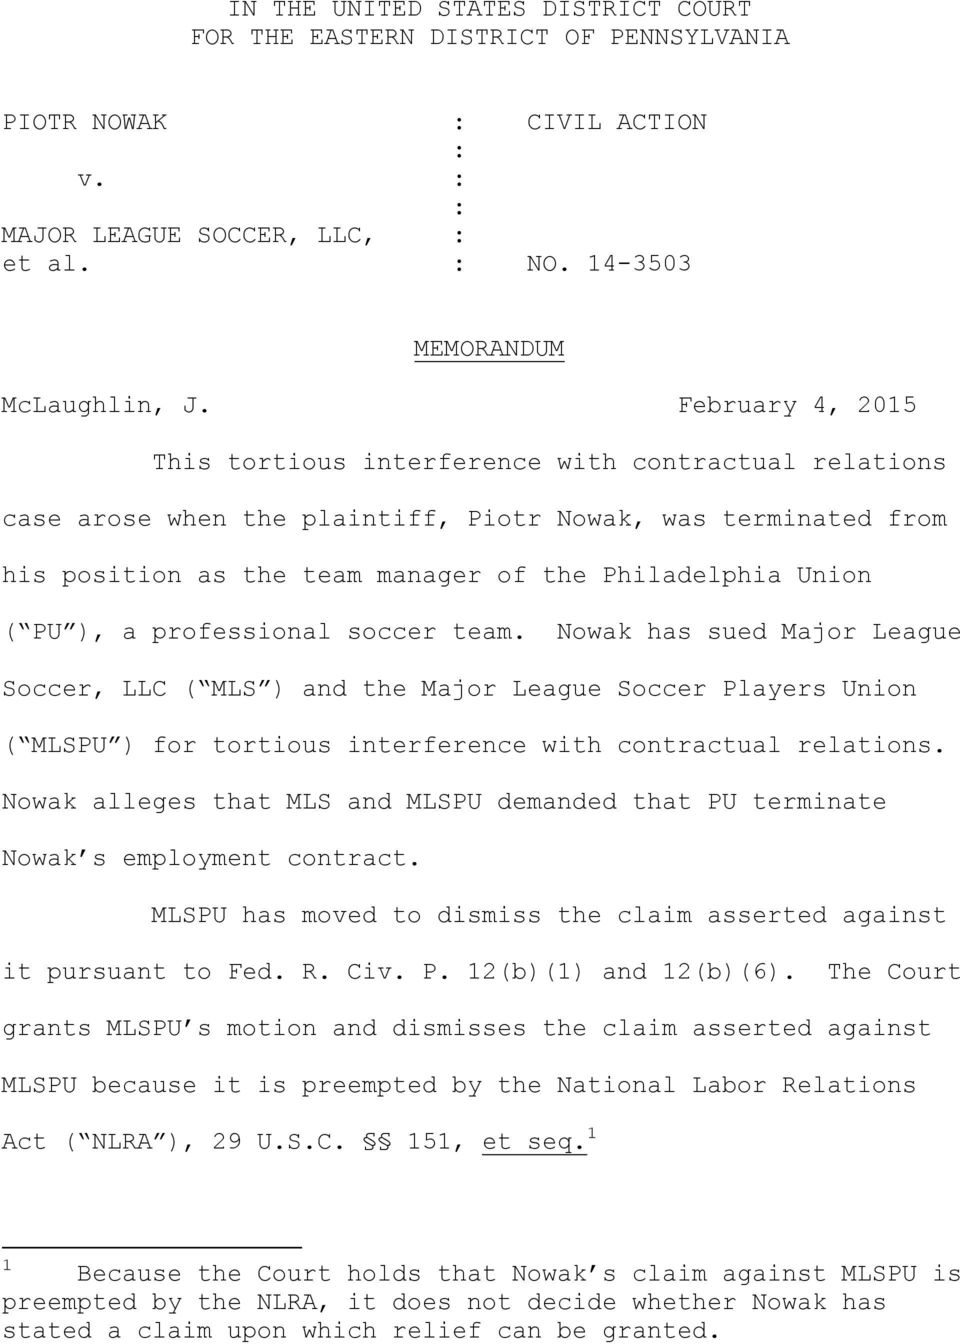 ), a professional soccer team. Nowak has sued Major League Soccer, LLC ( MLS ) and the Major League Soccer Players Union ( MLSPU ) for tortious interference with contractual relations.